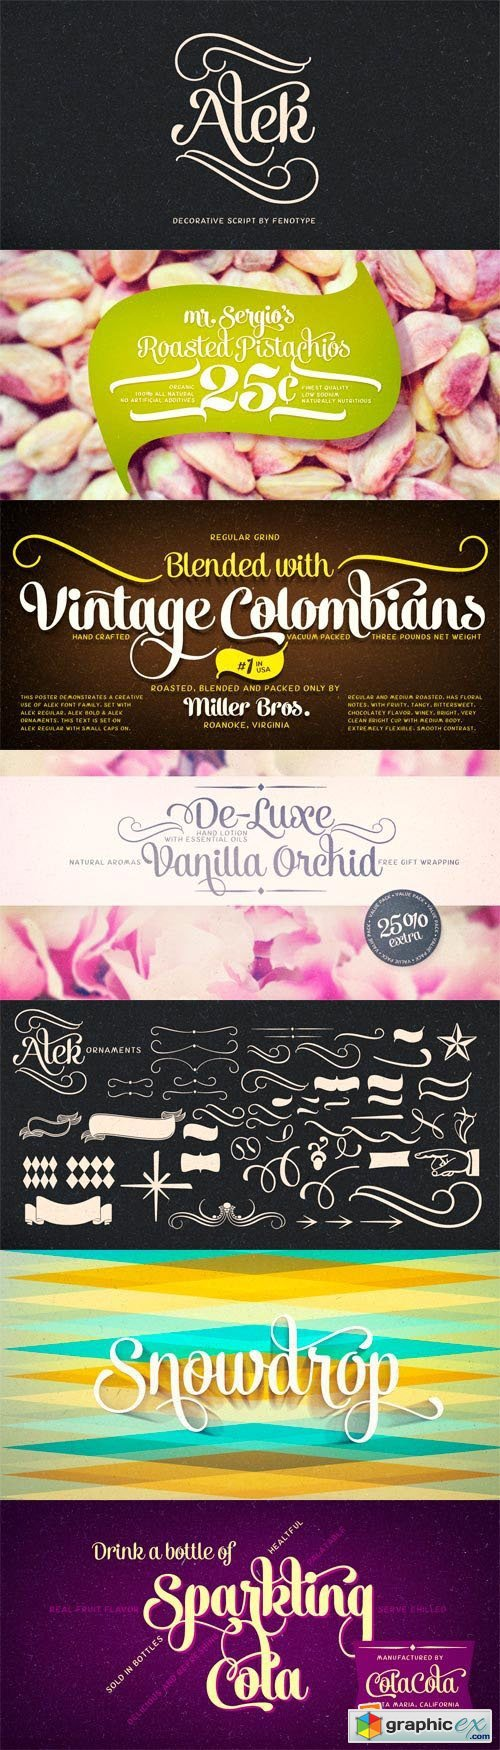 Alek Font Family - 5 Fonts for $32